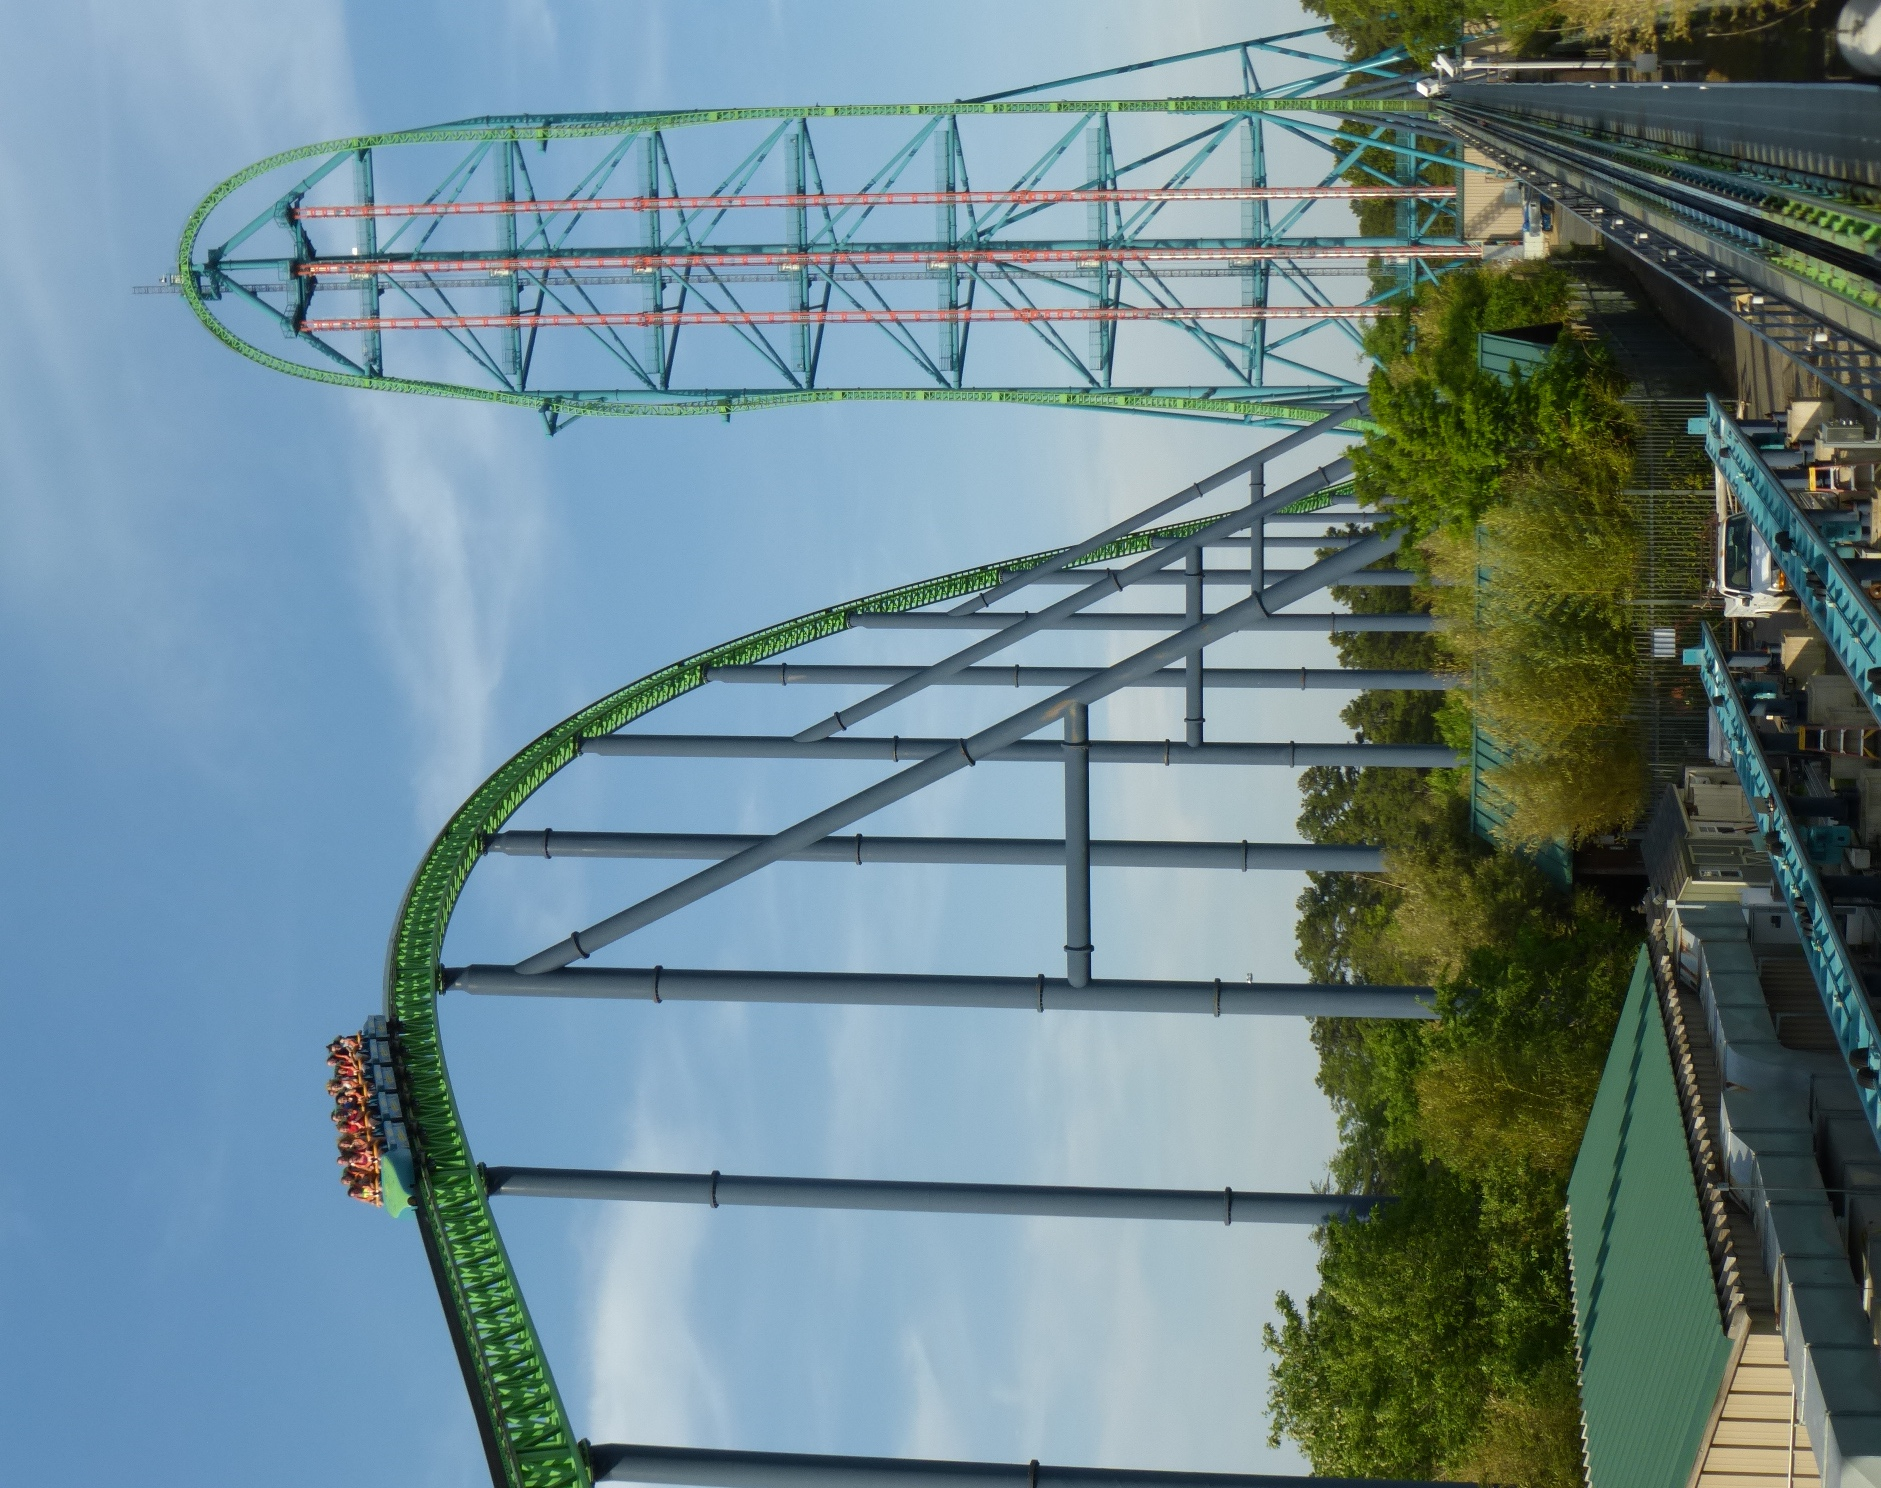 Profile America: Thrill Rides